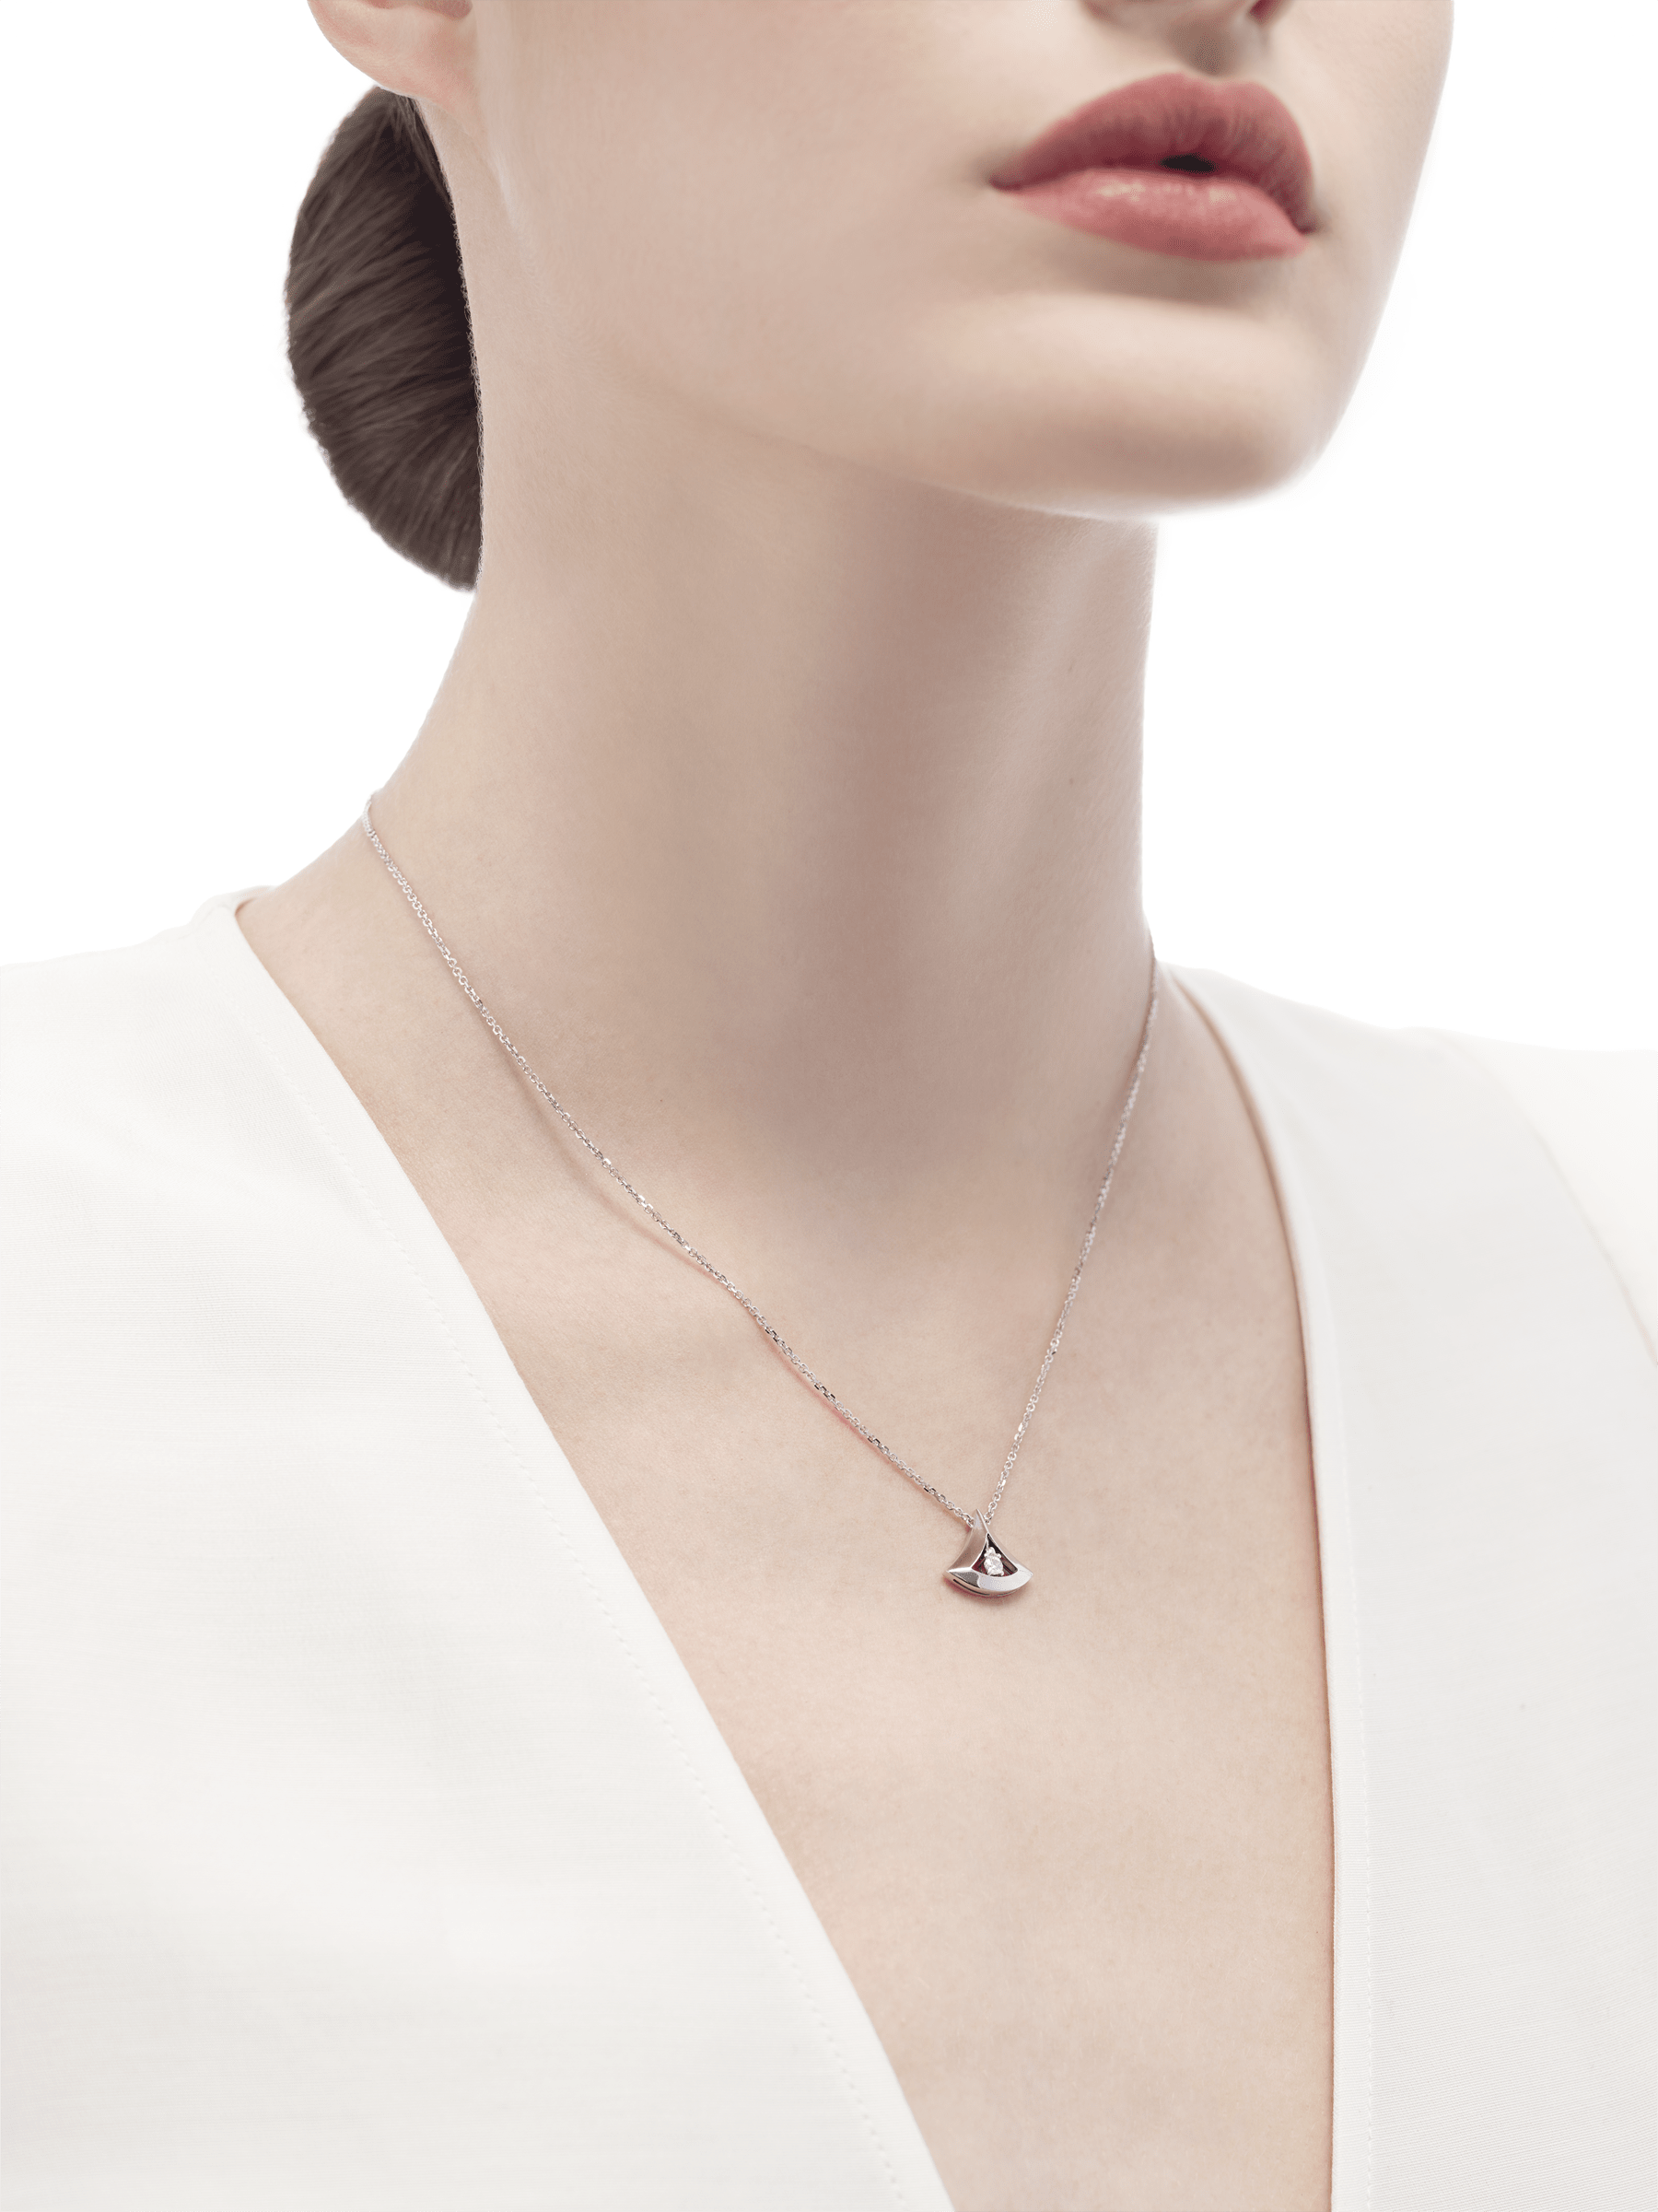 DIVAS' DREAM openwork necklace in 18 kt white gold with 18 kt white gold pendant set with a central diamond (0.10 ct). 354048 image 3